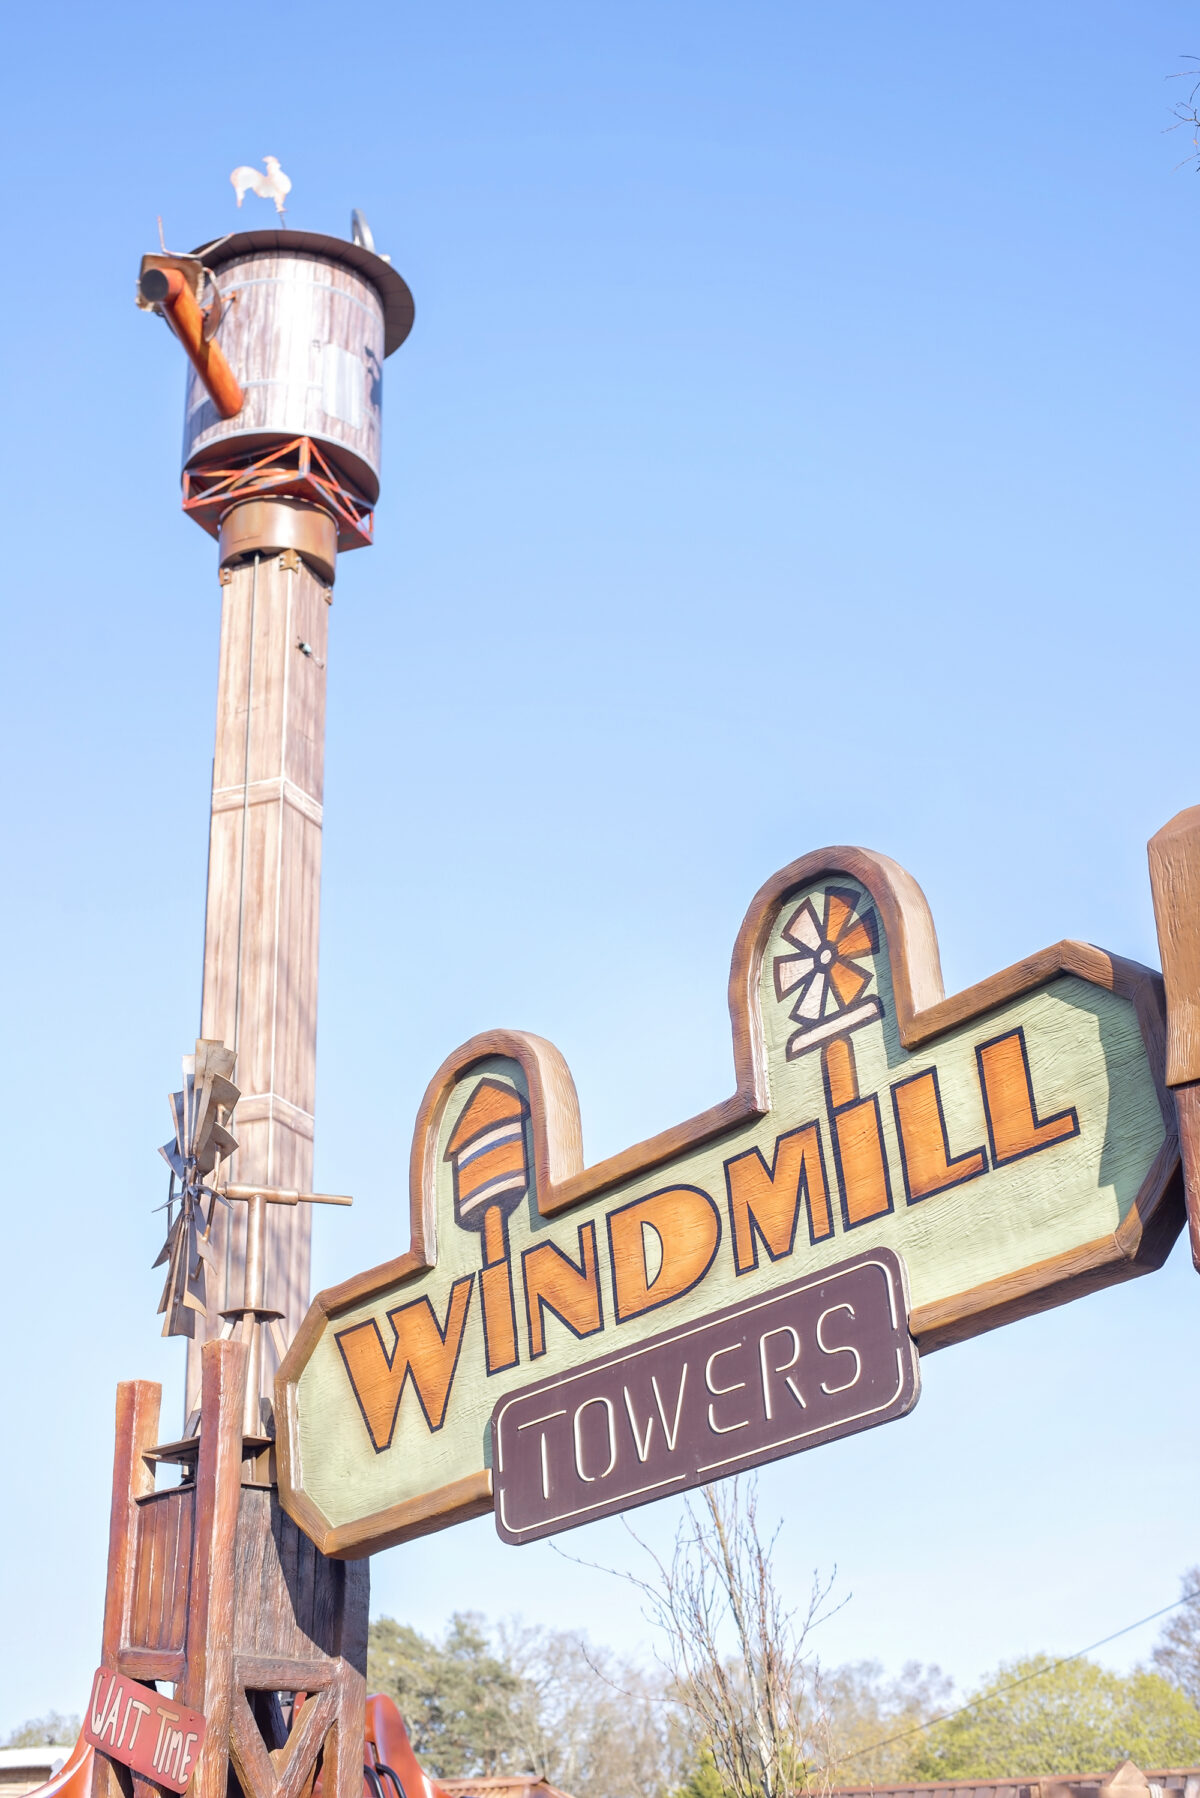 Image shows the signage for the Windmill Falls ride at Tornado Springs, Paultons Park, Hampshire.